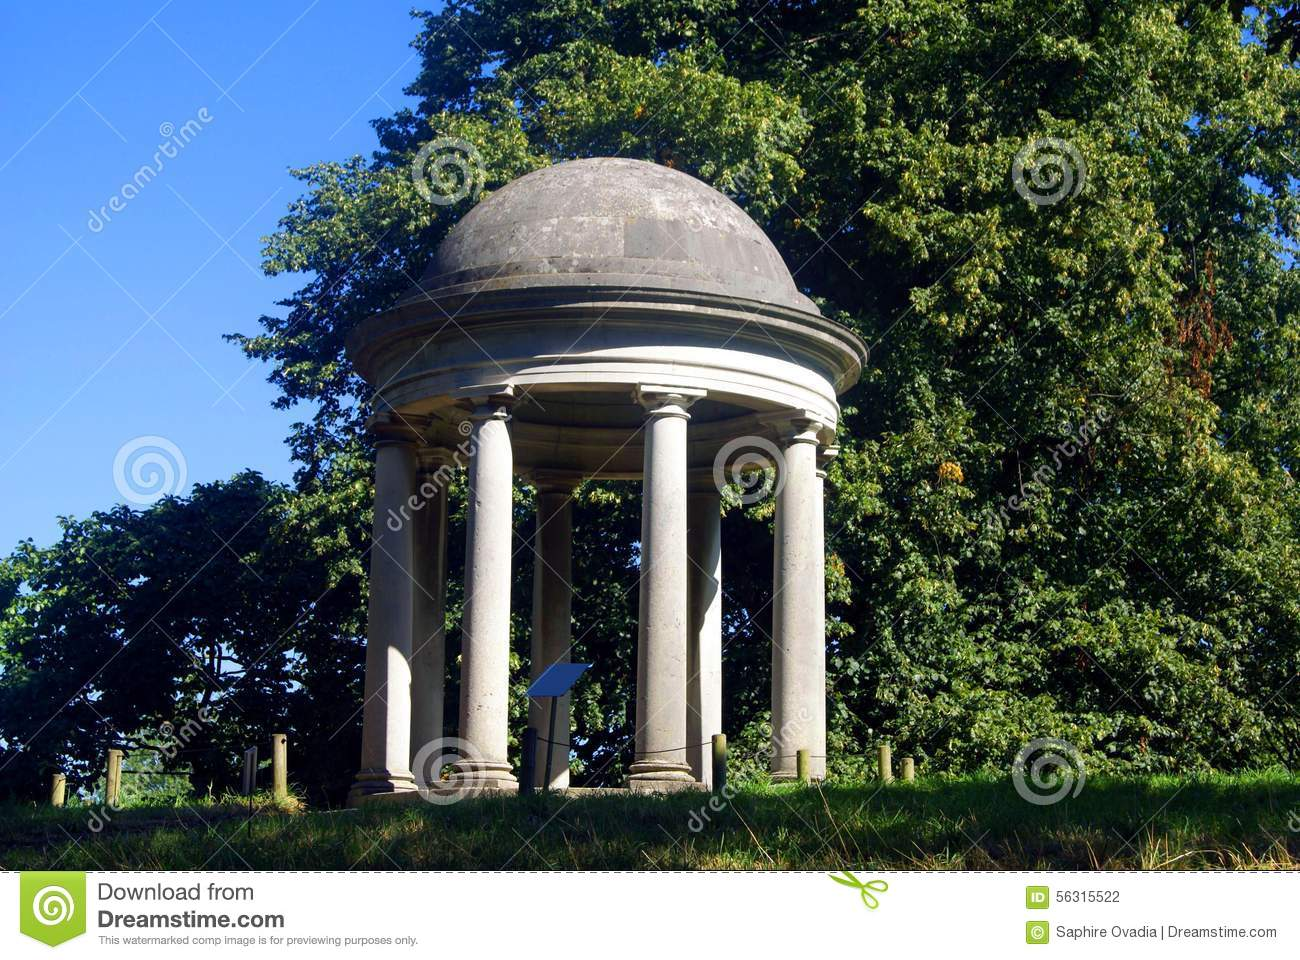 The rotunda is a temple, mausoleum or arbor 24